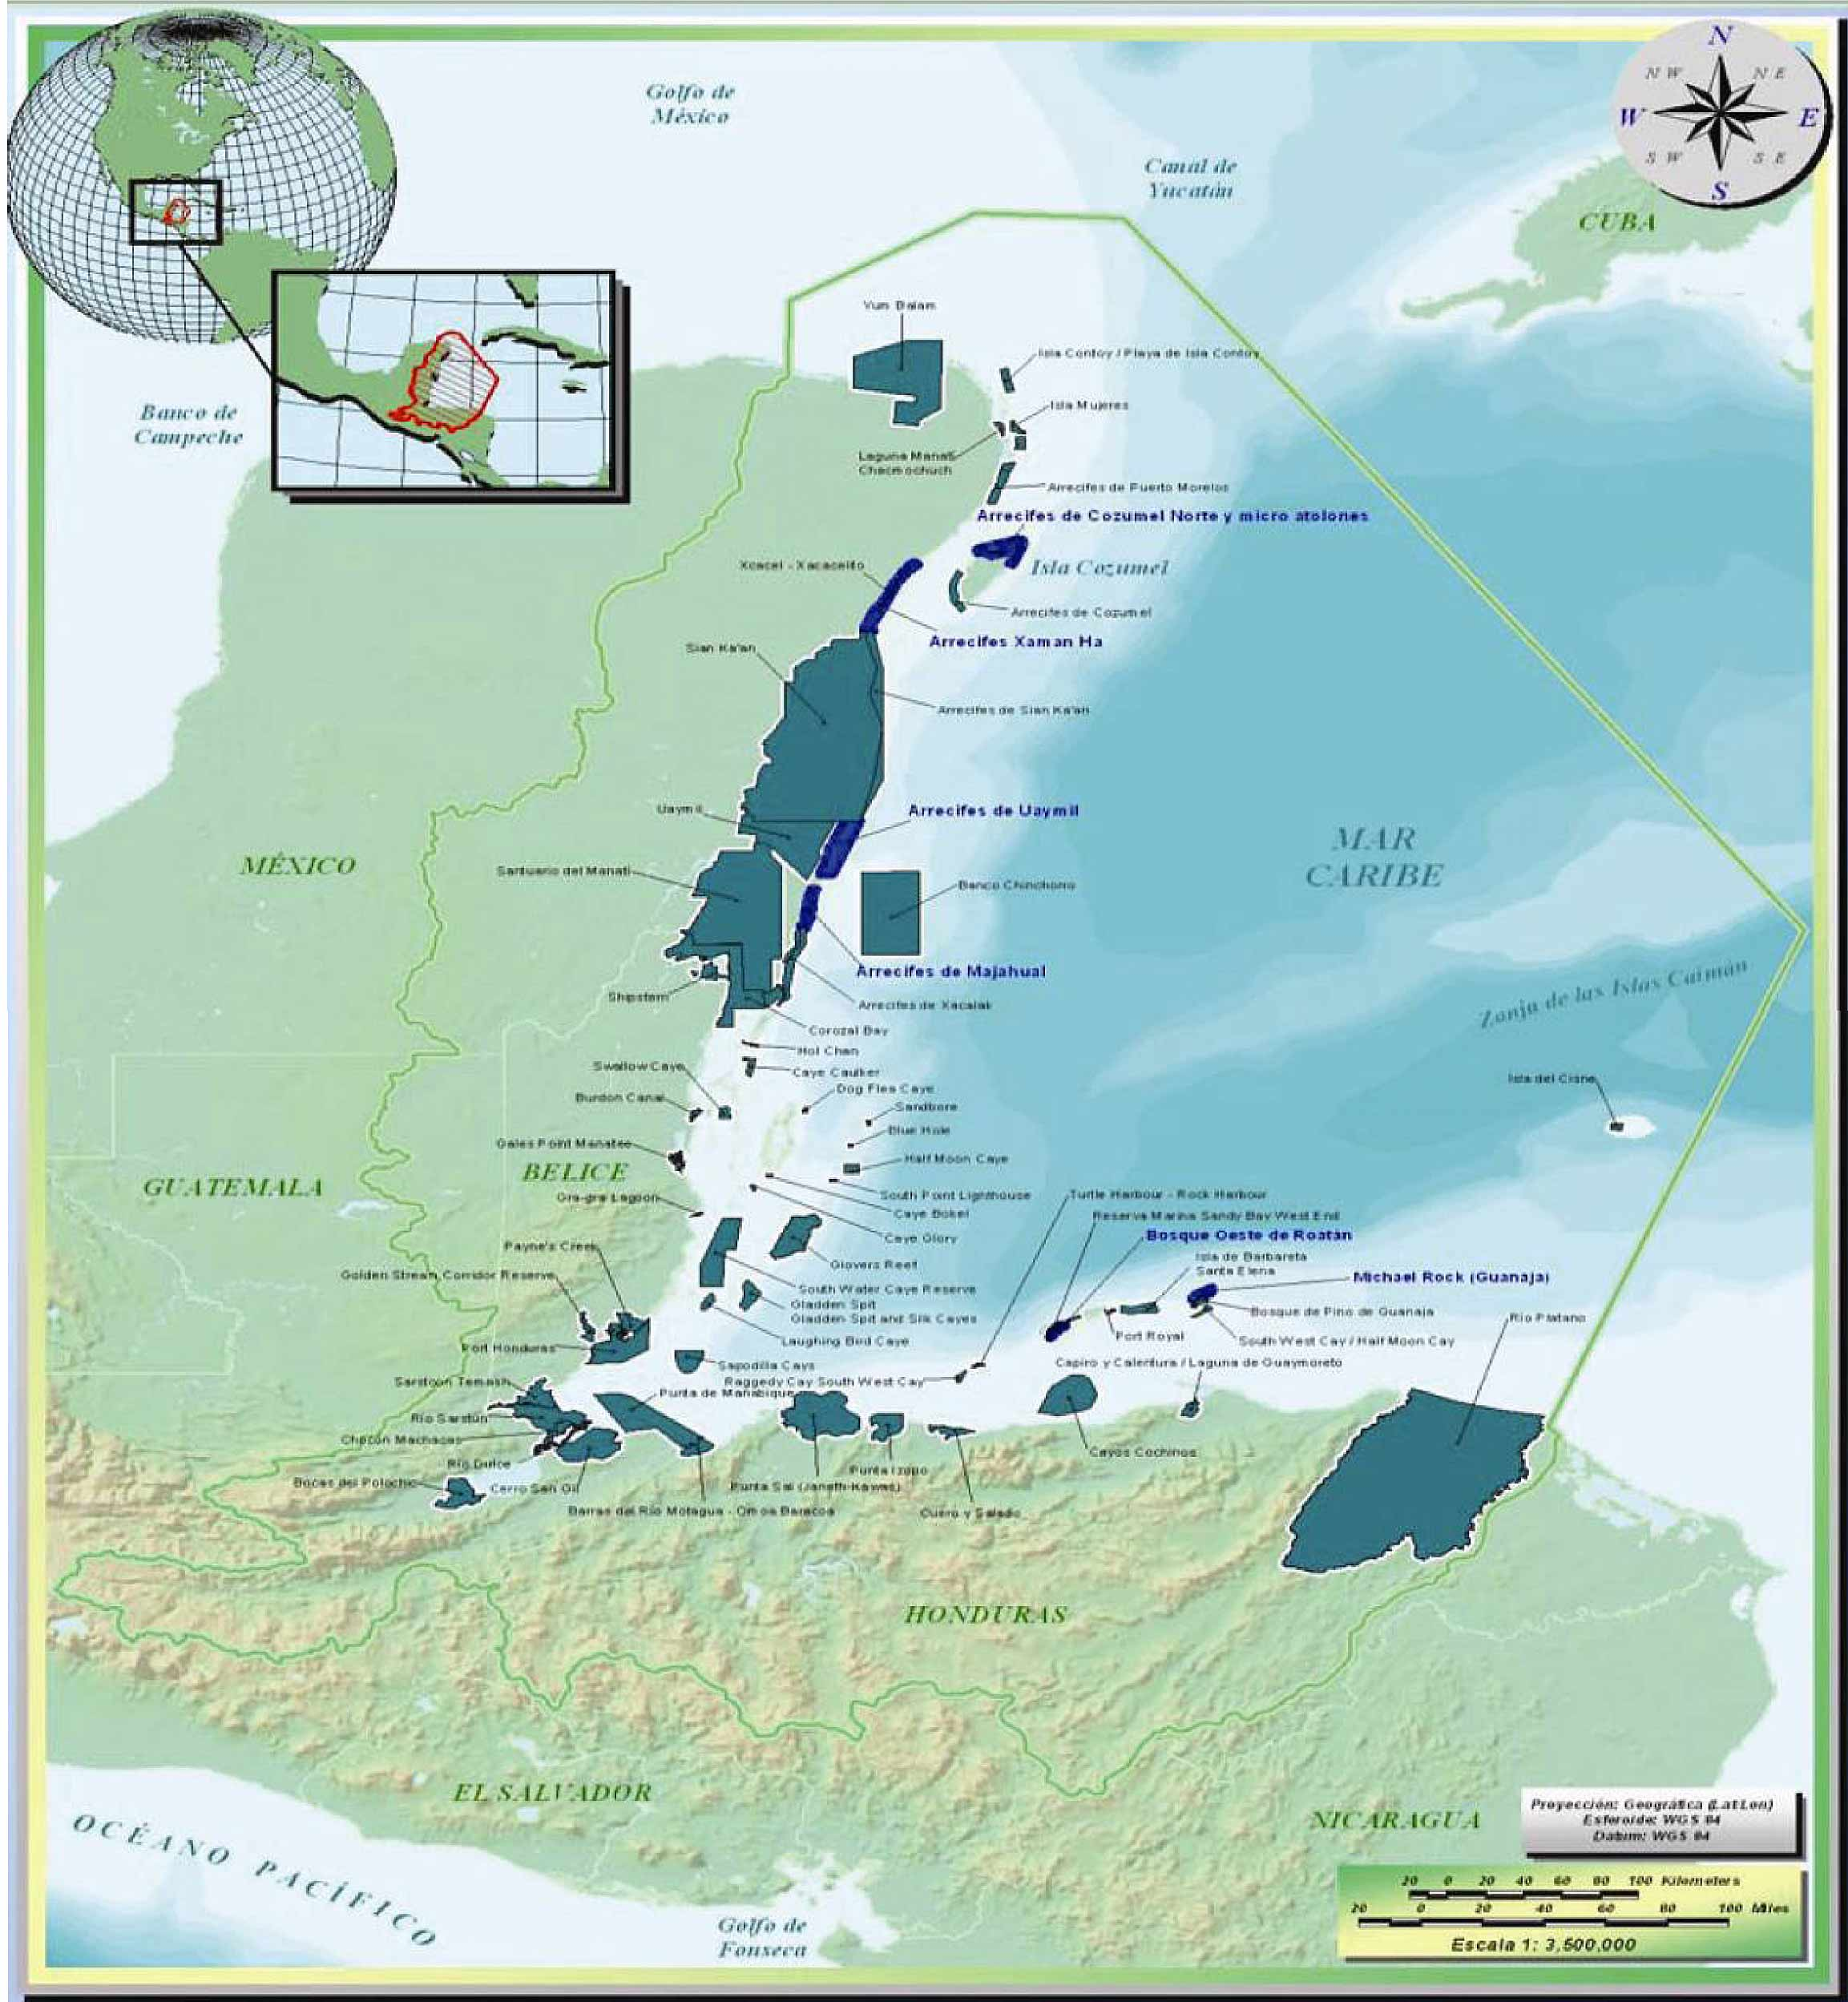 Stinapa Gives Information About Protected Marine Species: Marine Protected Areas, Mexico, Belize, Honduras And Guatemala